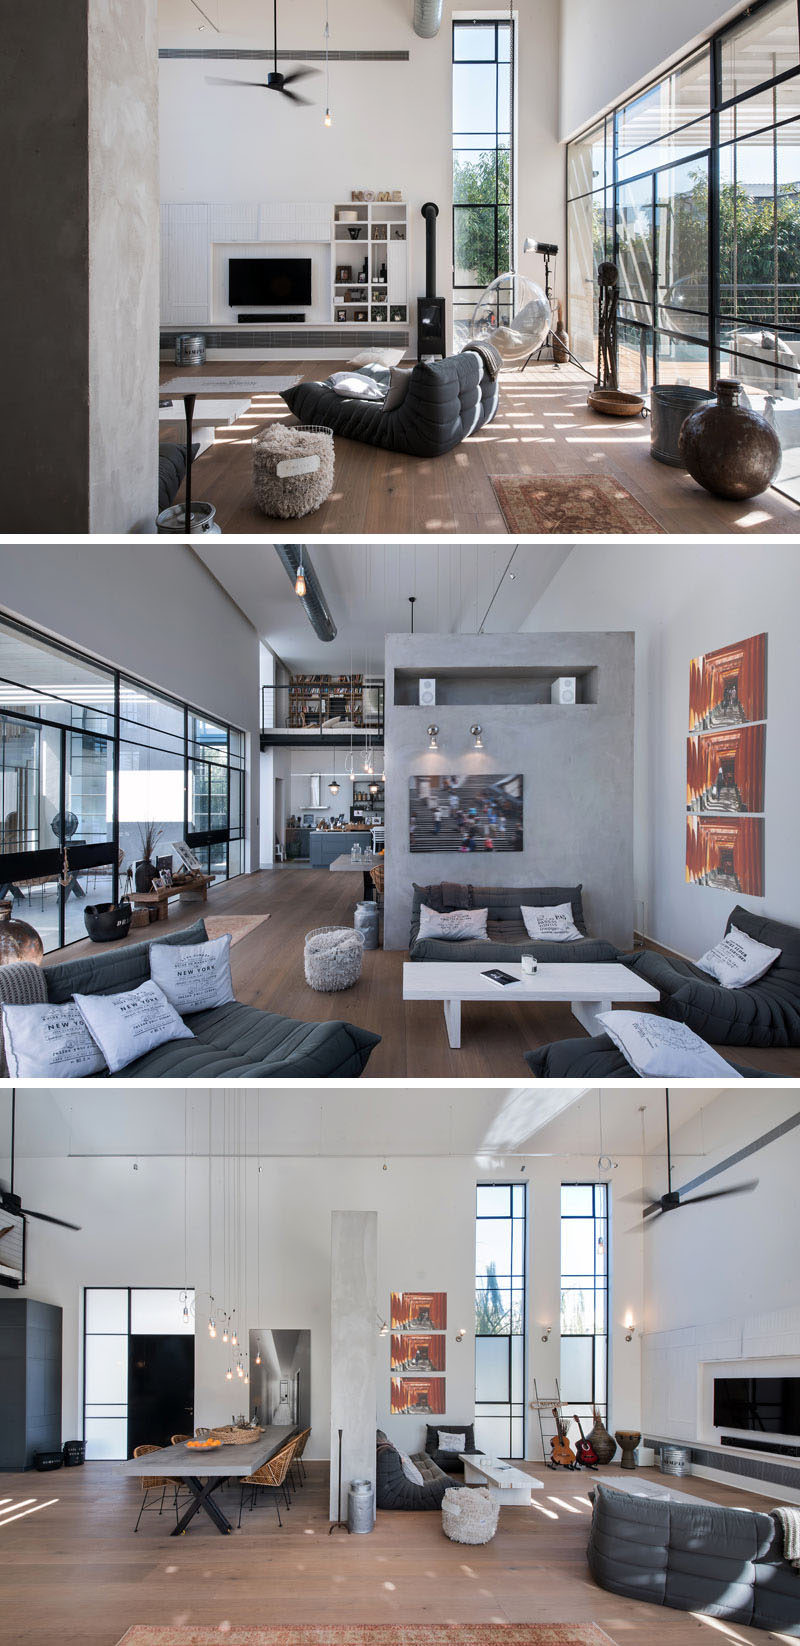 This home has a double-height ceiling accompanied by large windows with black frames. In the living area, comfortable couches are focused on the television, and a partial wall divides the open space to define the dining area.